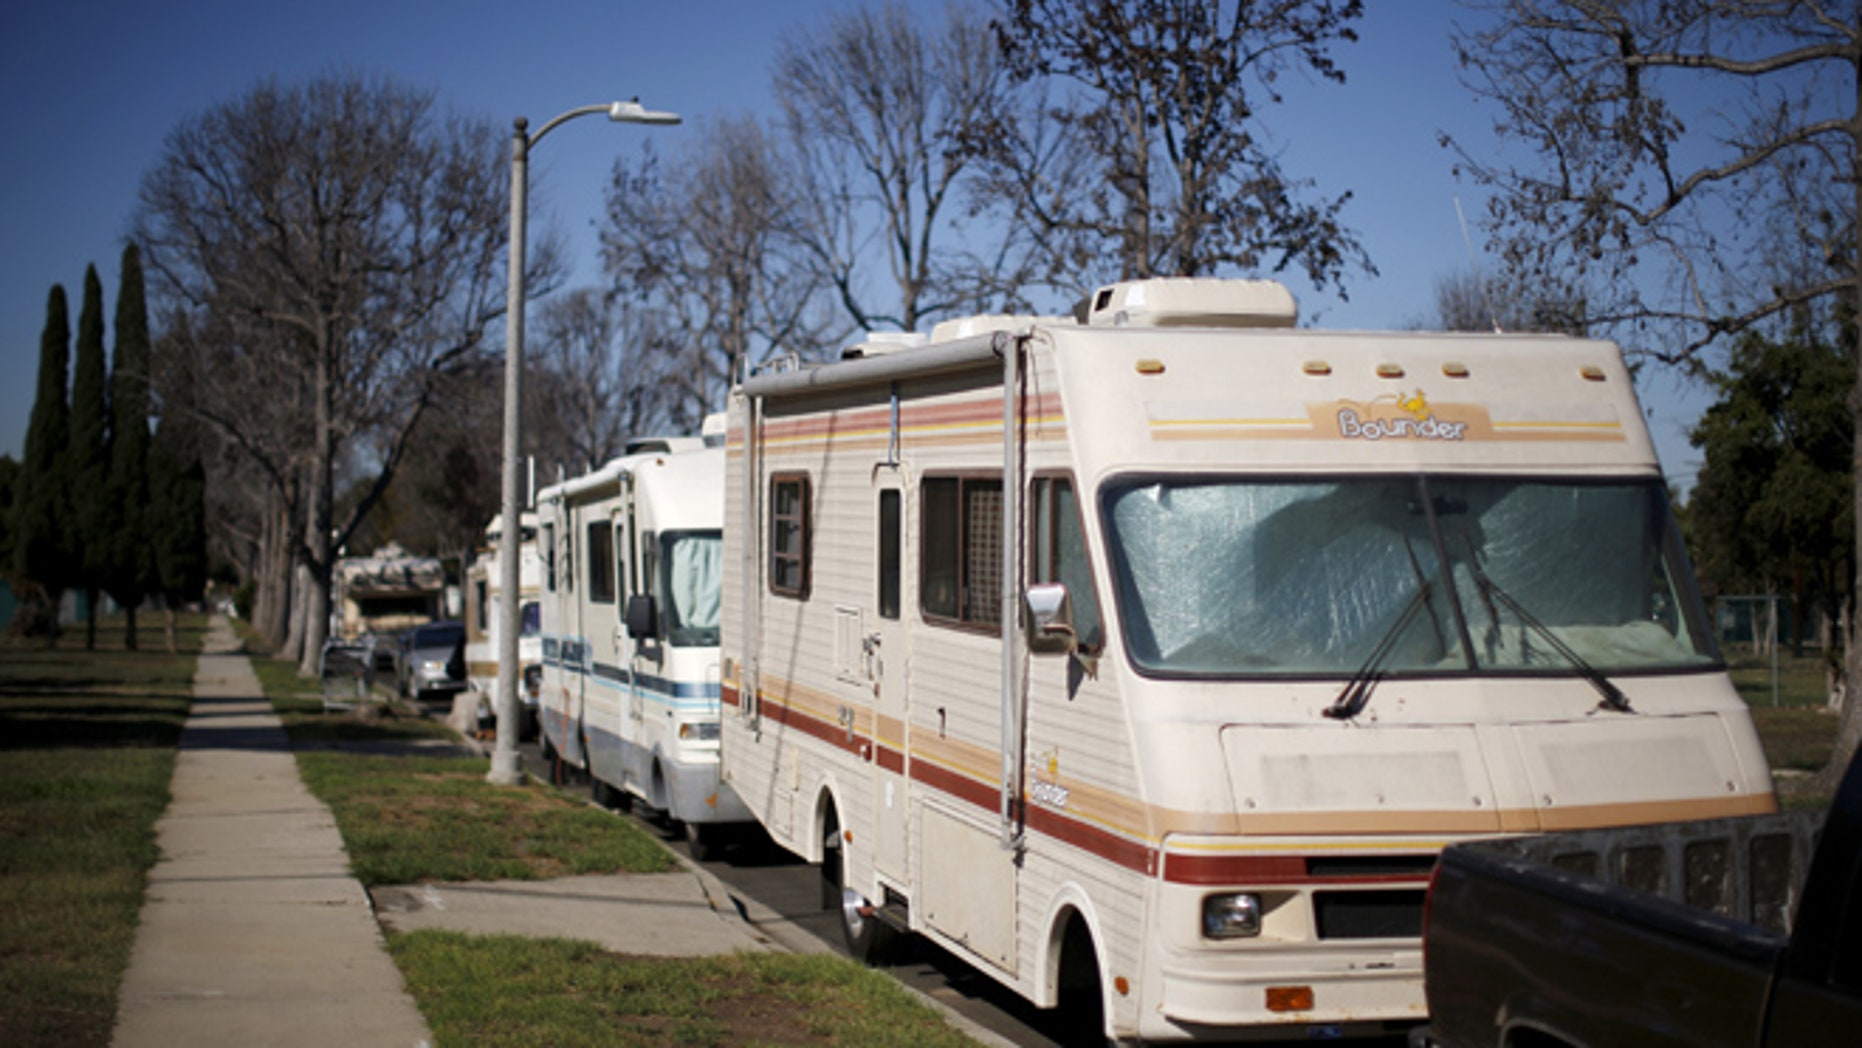 Motorhomes line the street in a homeless motorhome and tent encampment near LAX airport in Los Angeles, California, United States